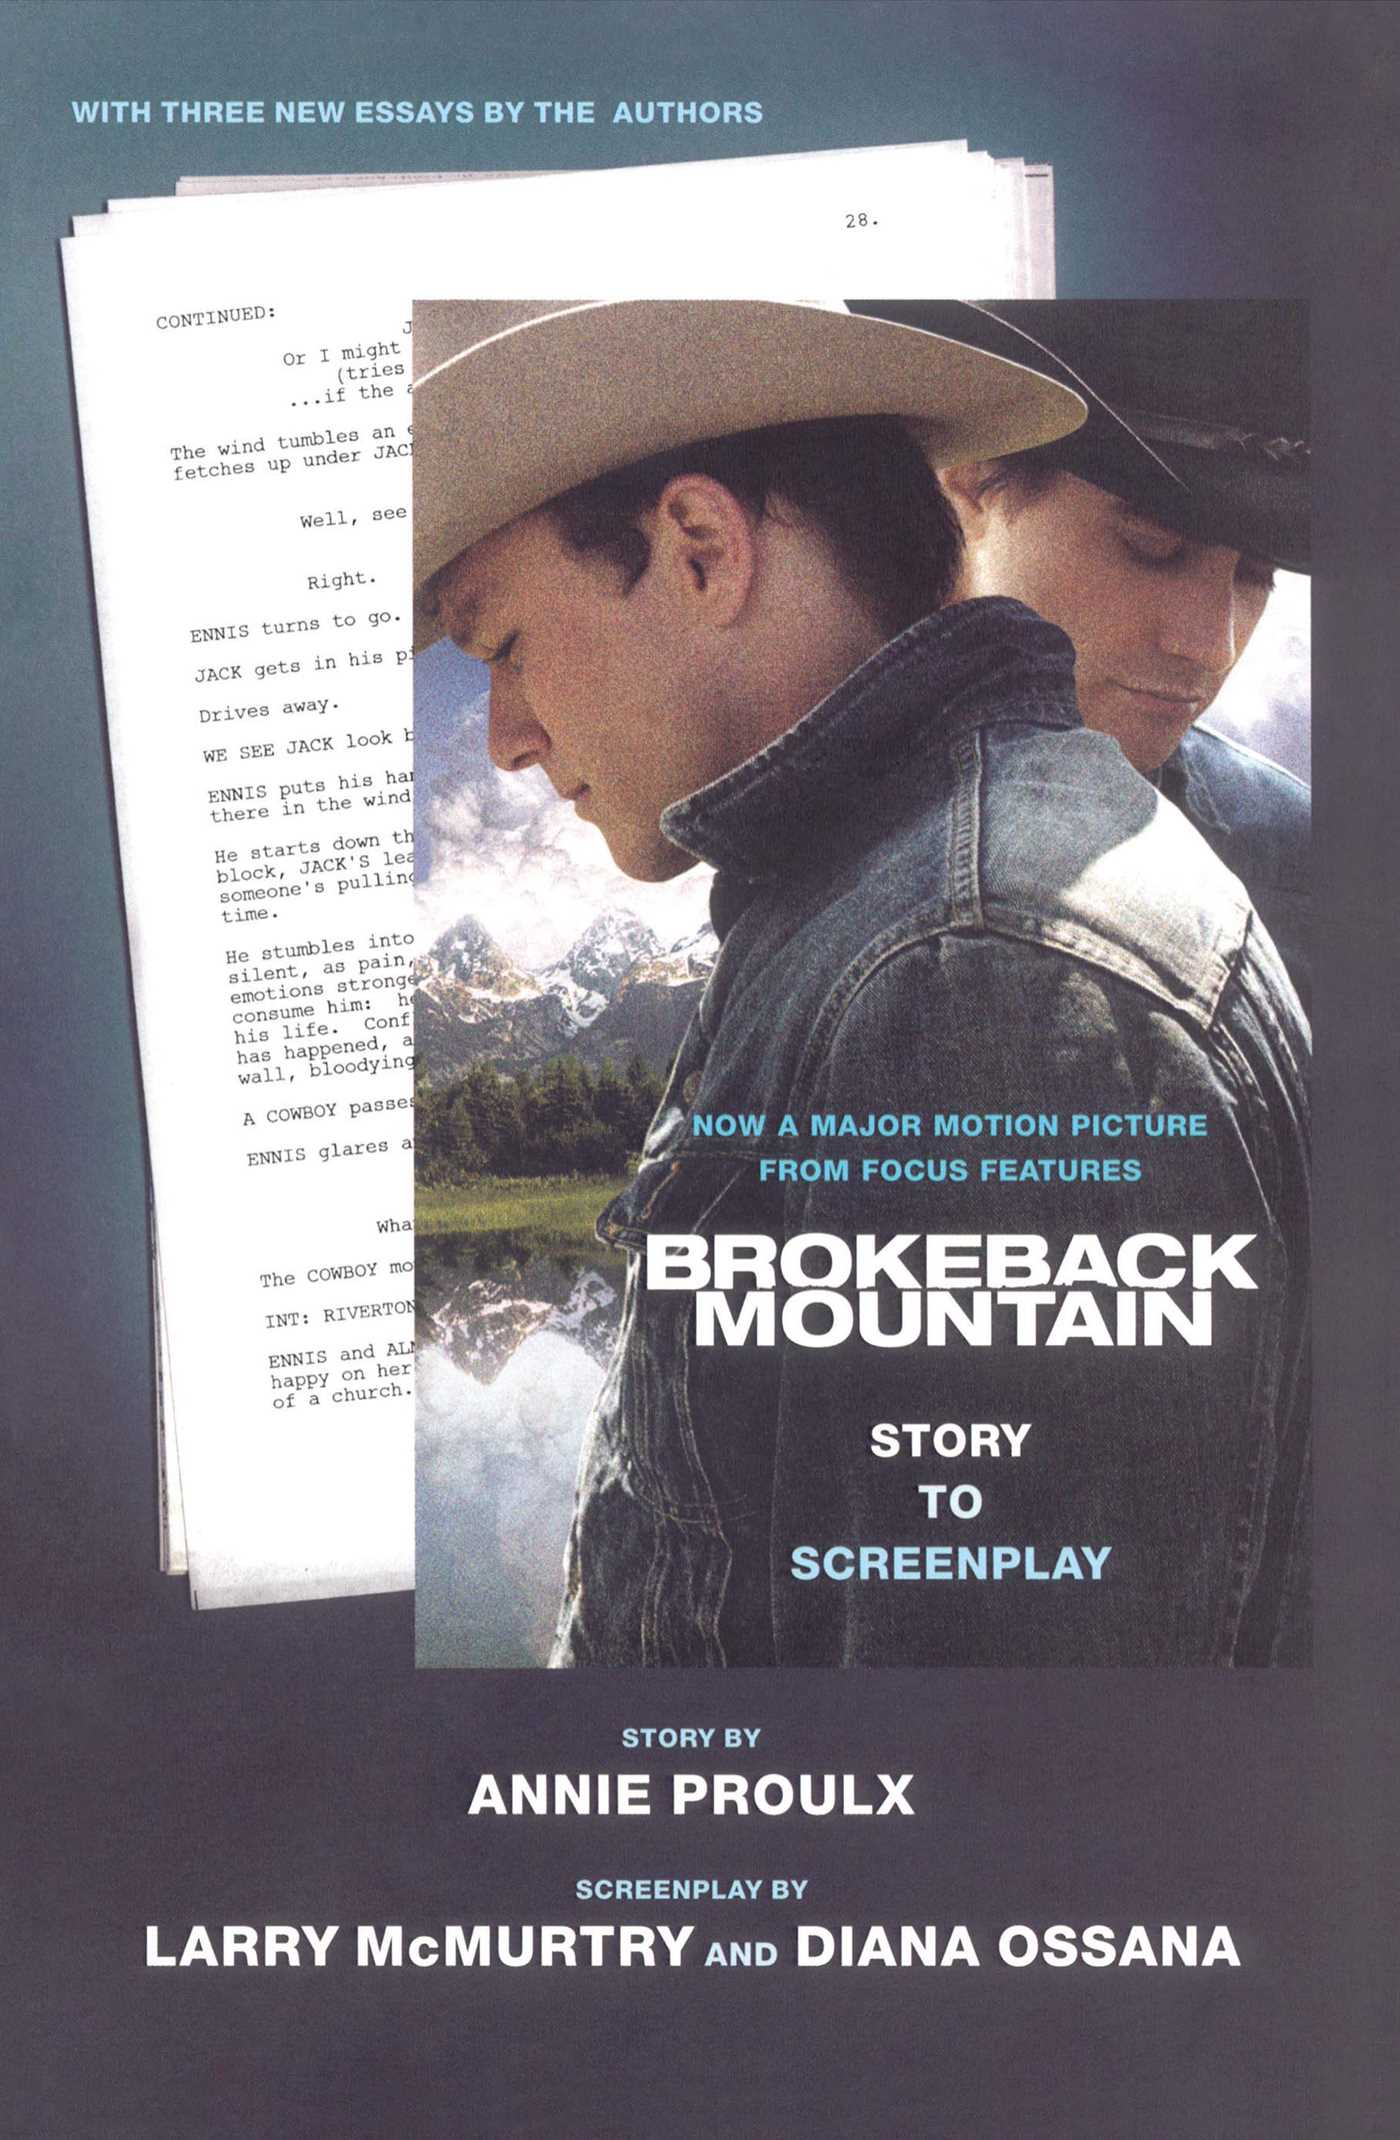 Brokeback-mountain-story-to-screenplay-9780743294164_hr